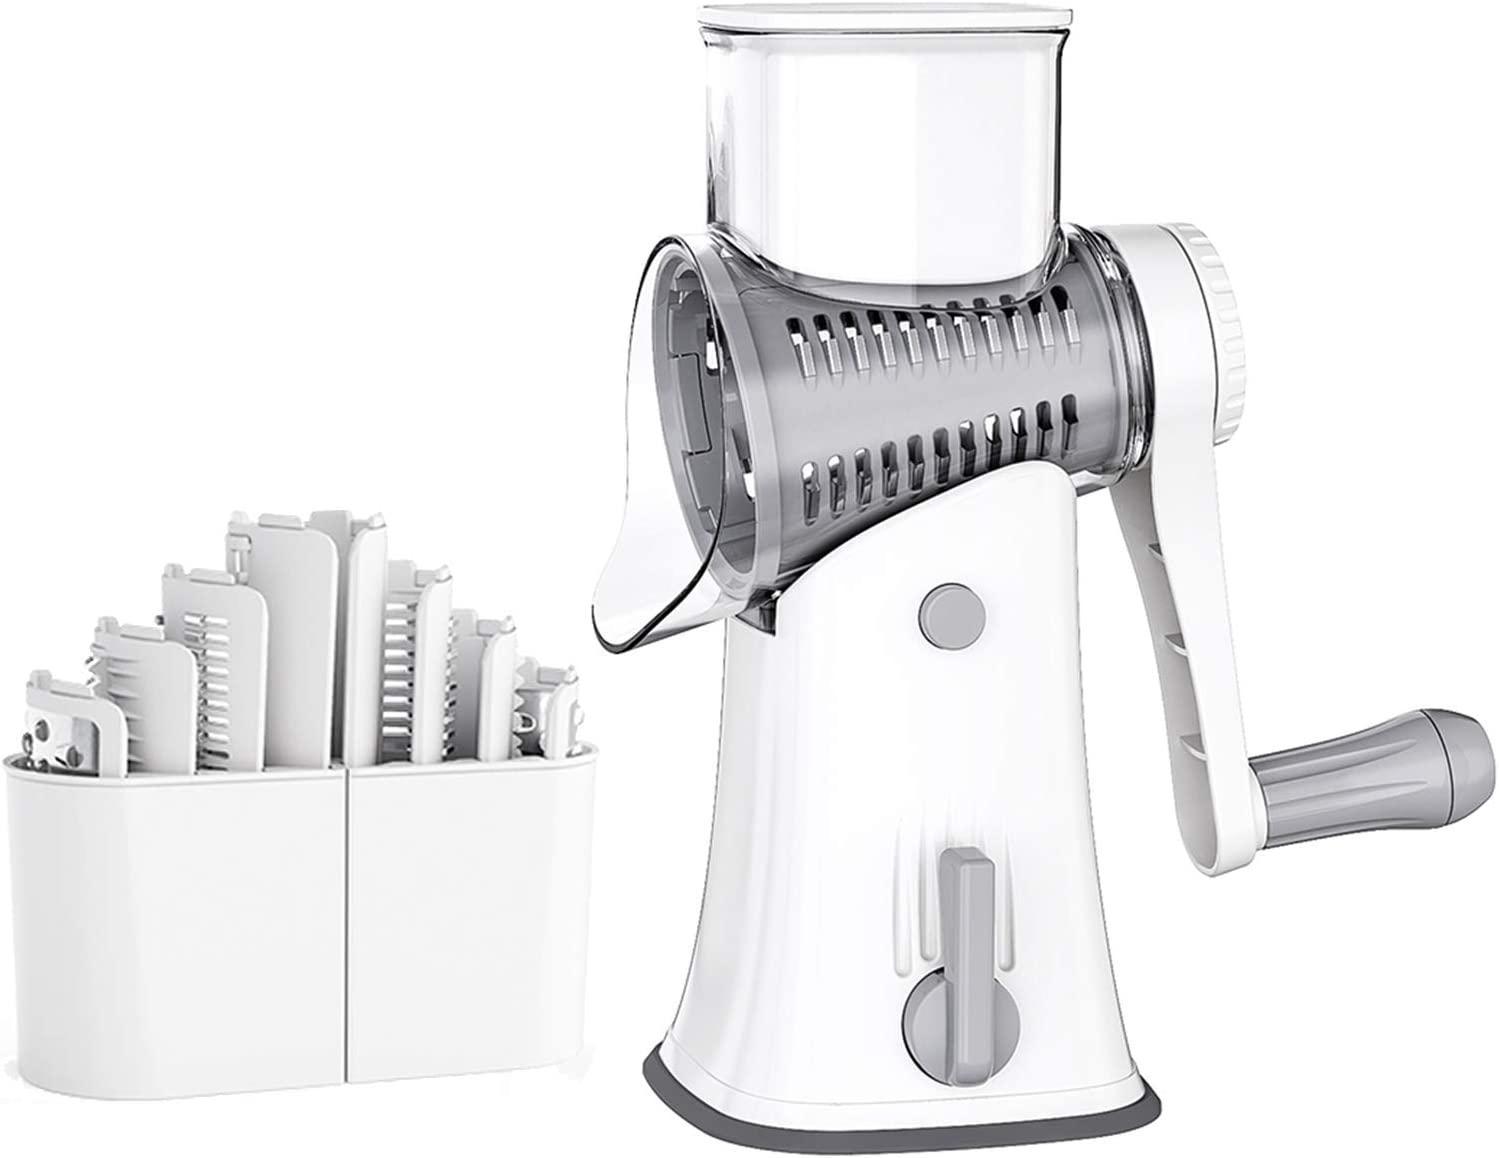 Aoloria Rotary Cheese Graters Round Mandoline Slicer Cheese Shredder Vegetable Slicer Walnuts Grinder with Strong-Hold Suction Cup Base and 5 replaceable blade(White)